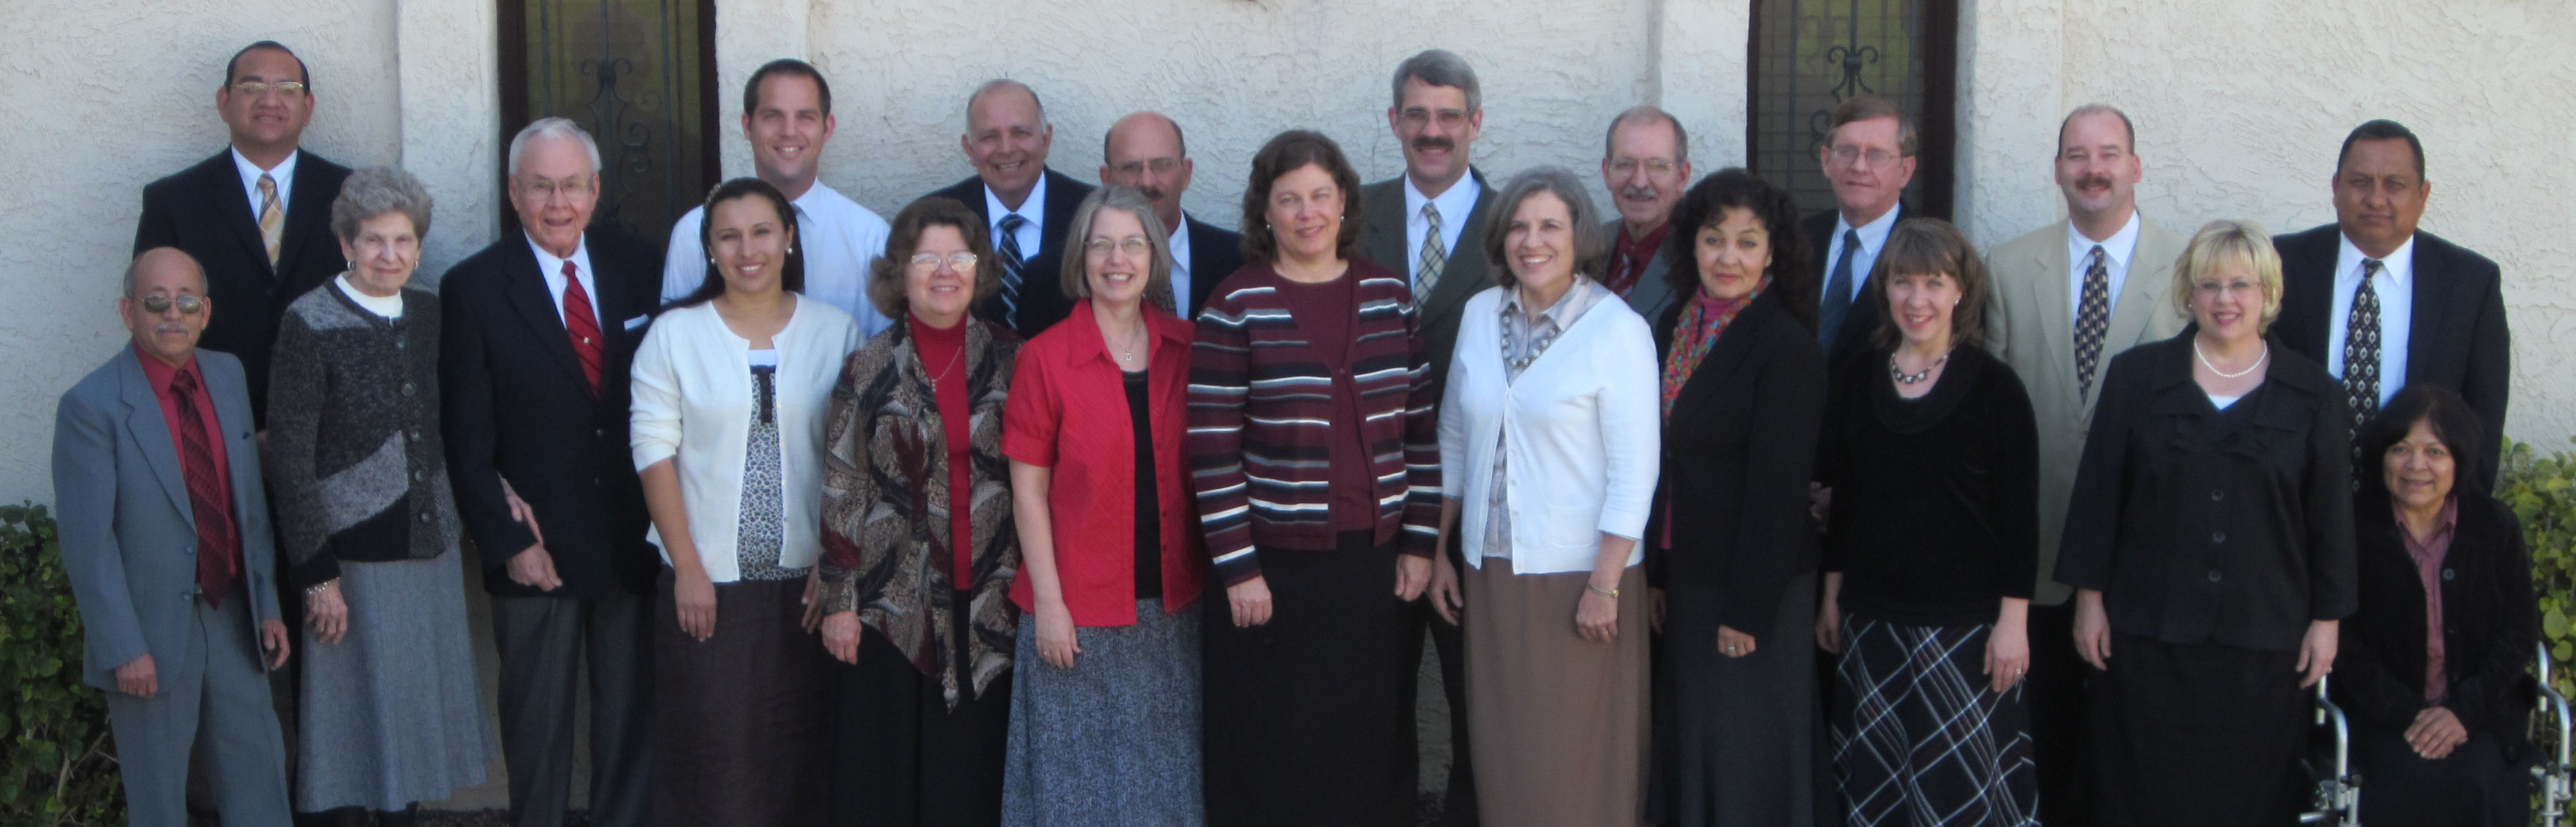 Staff-Conf-2012-group-photo-cropped